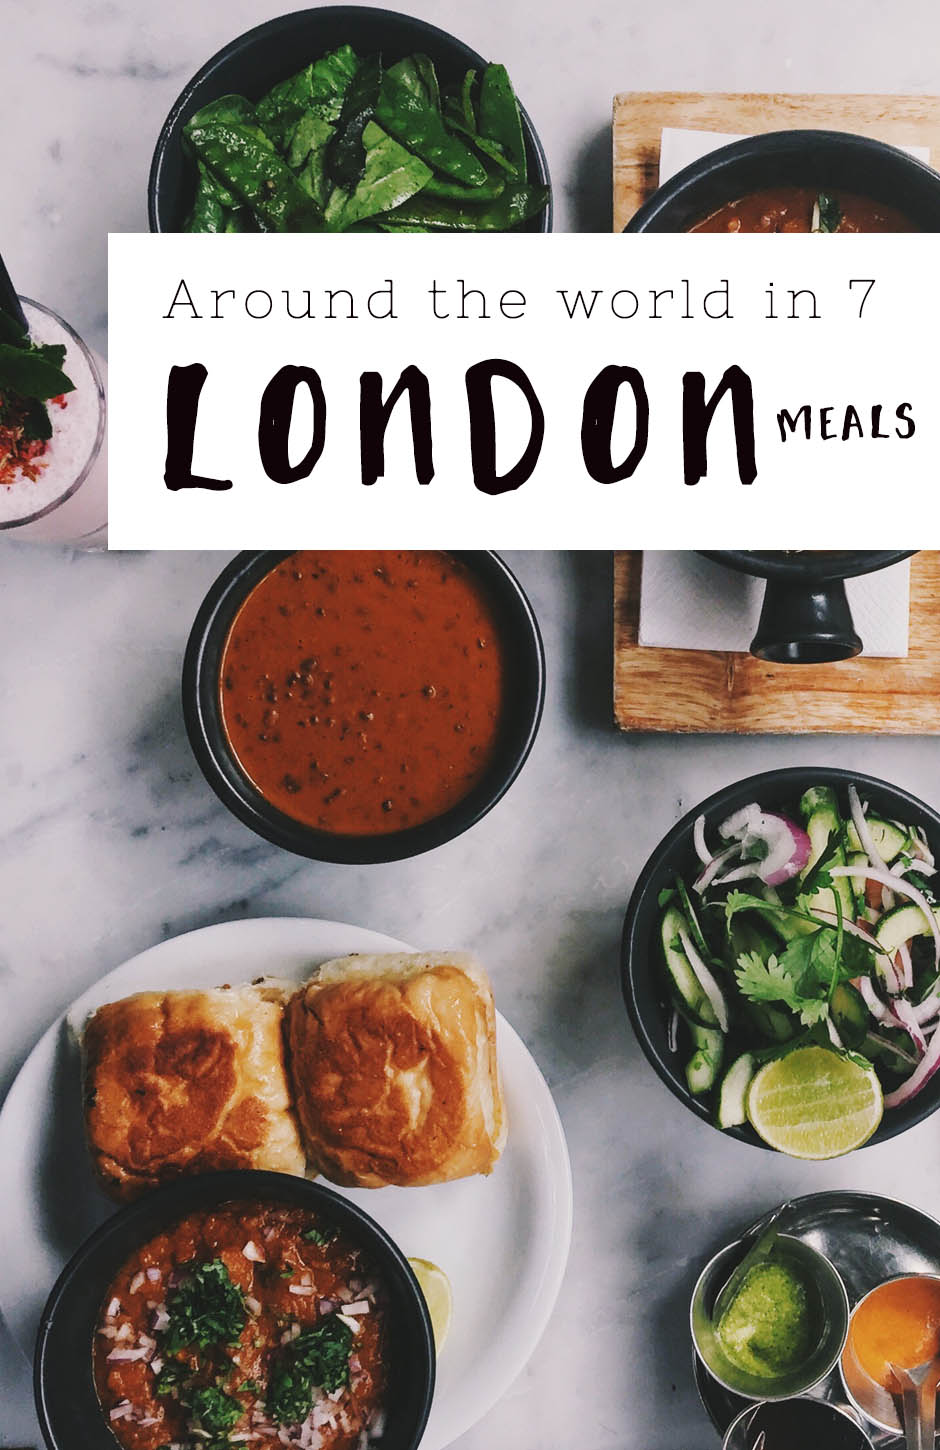 Around the world in 7 London meals - Best international food in London